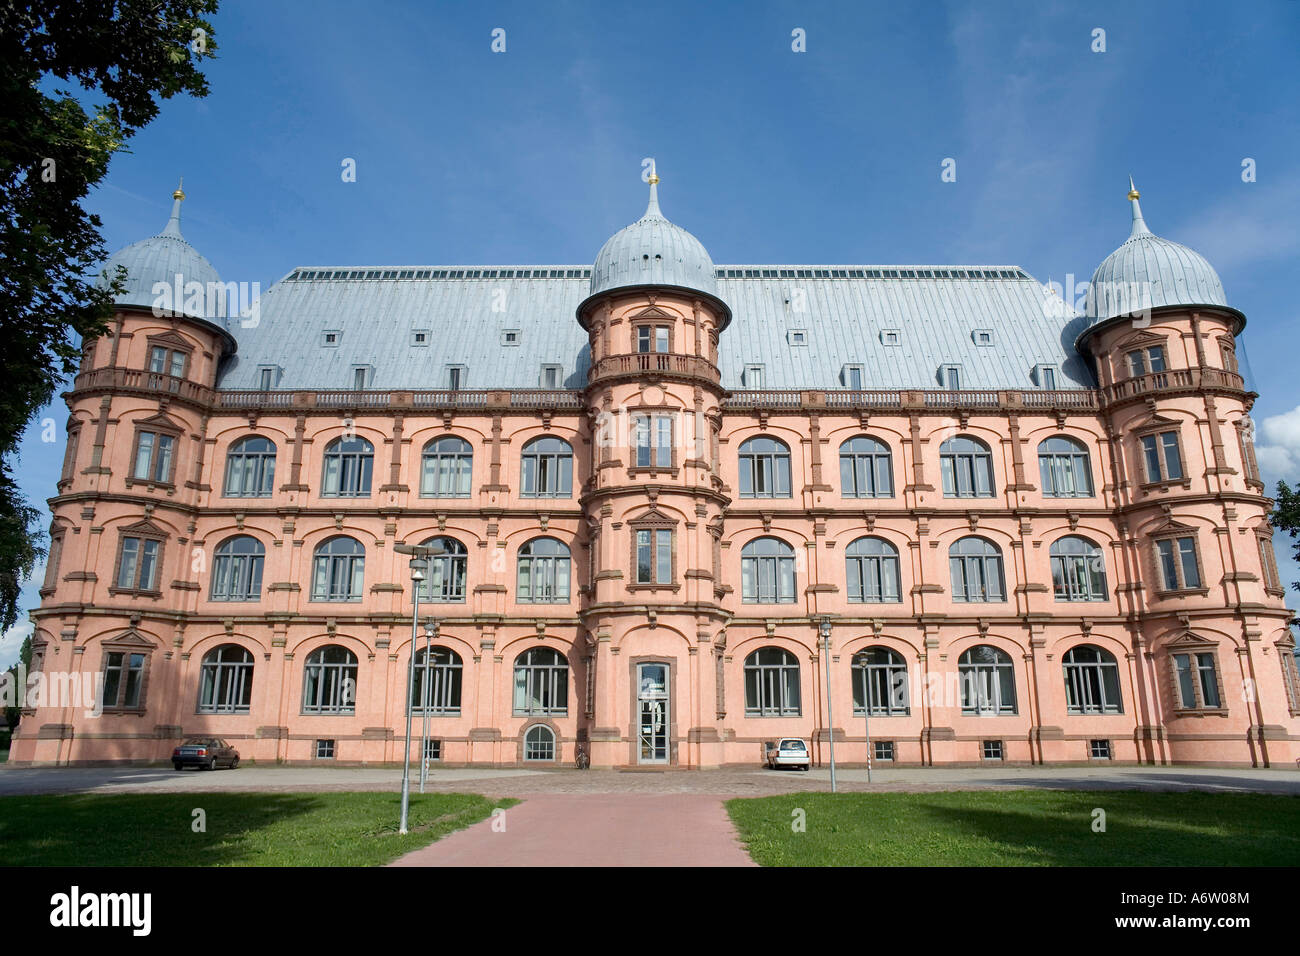 West view of castle Gottesaue, college for music, Karlsruhe, Baden-Wuerttemberg, Germany Stock Photo